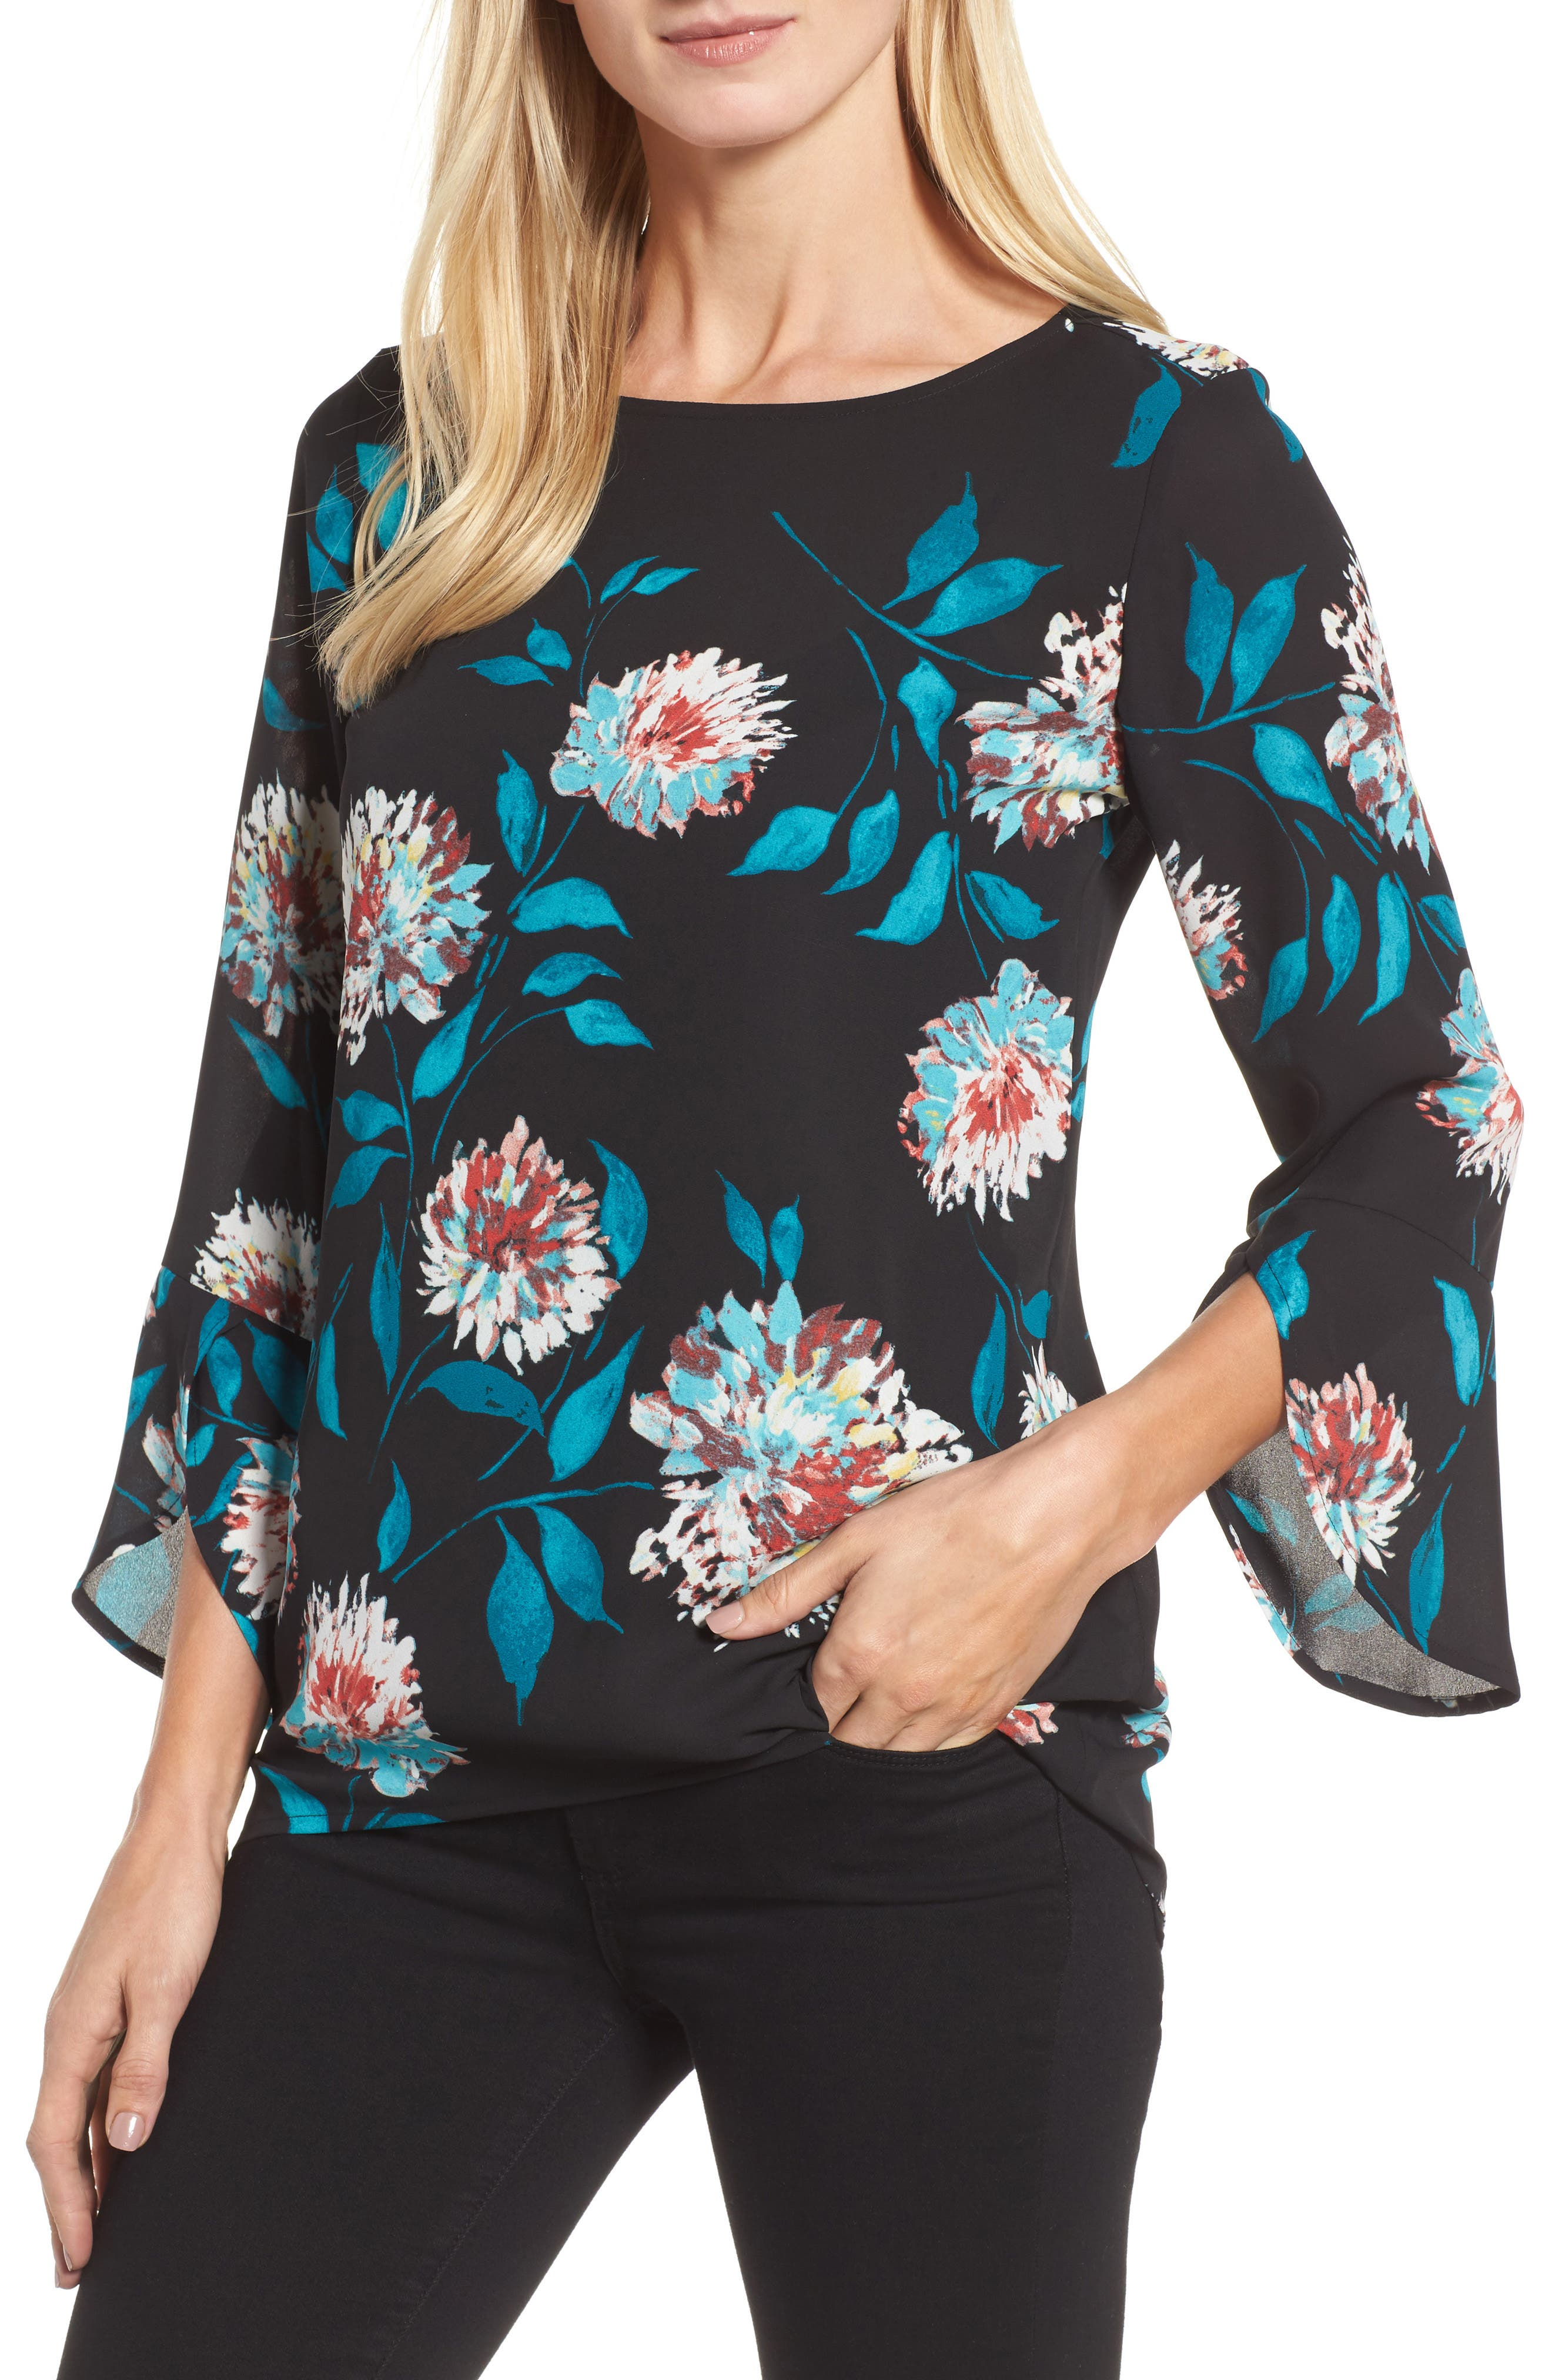 Kyoto Blossoms Bell Sleeve Blouse,                             Main thumbnail 1, color,                             006